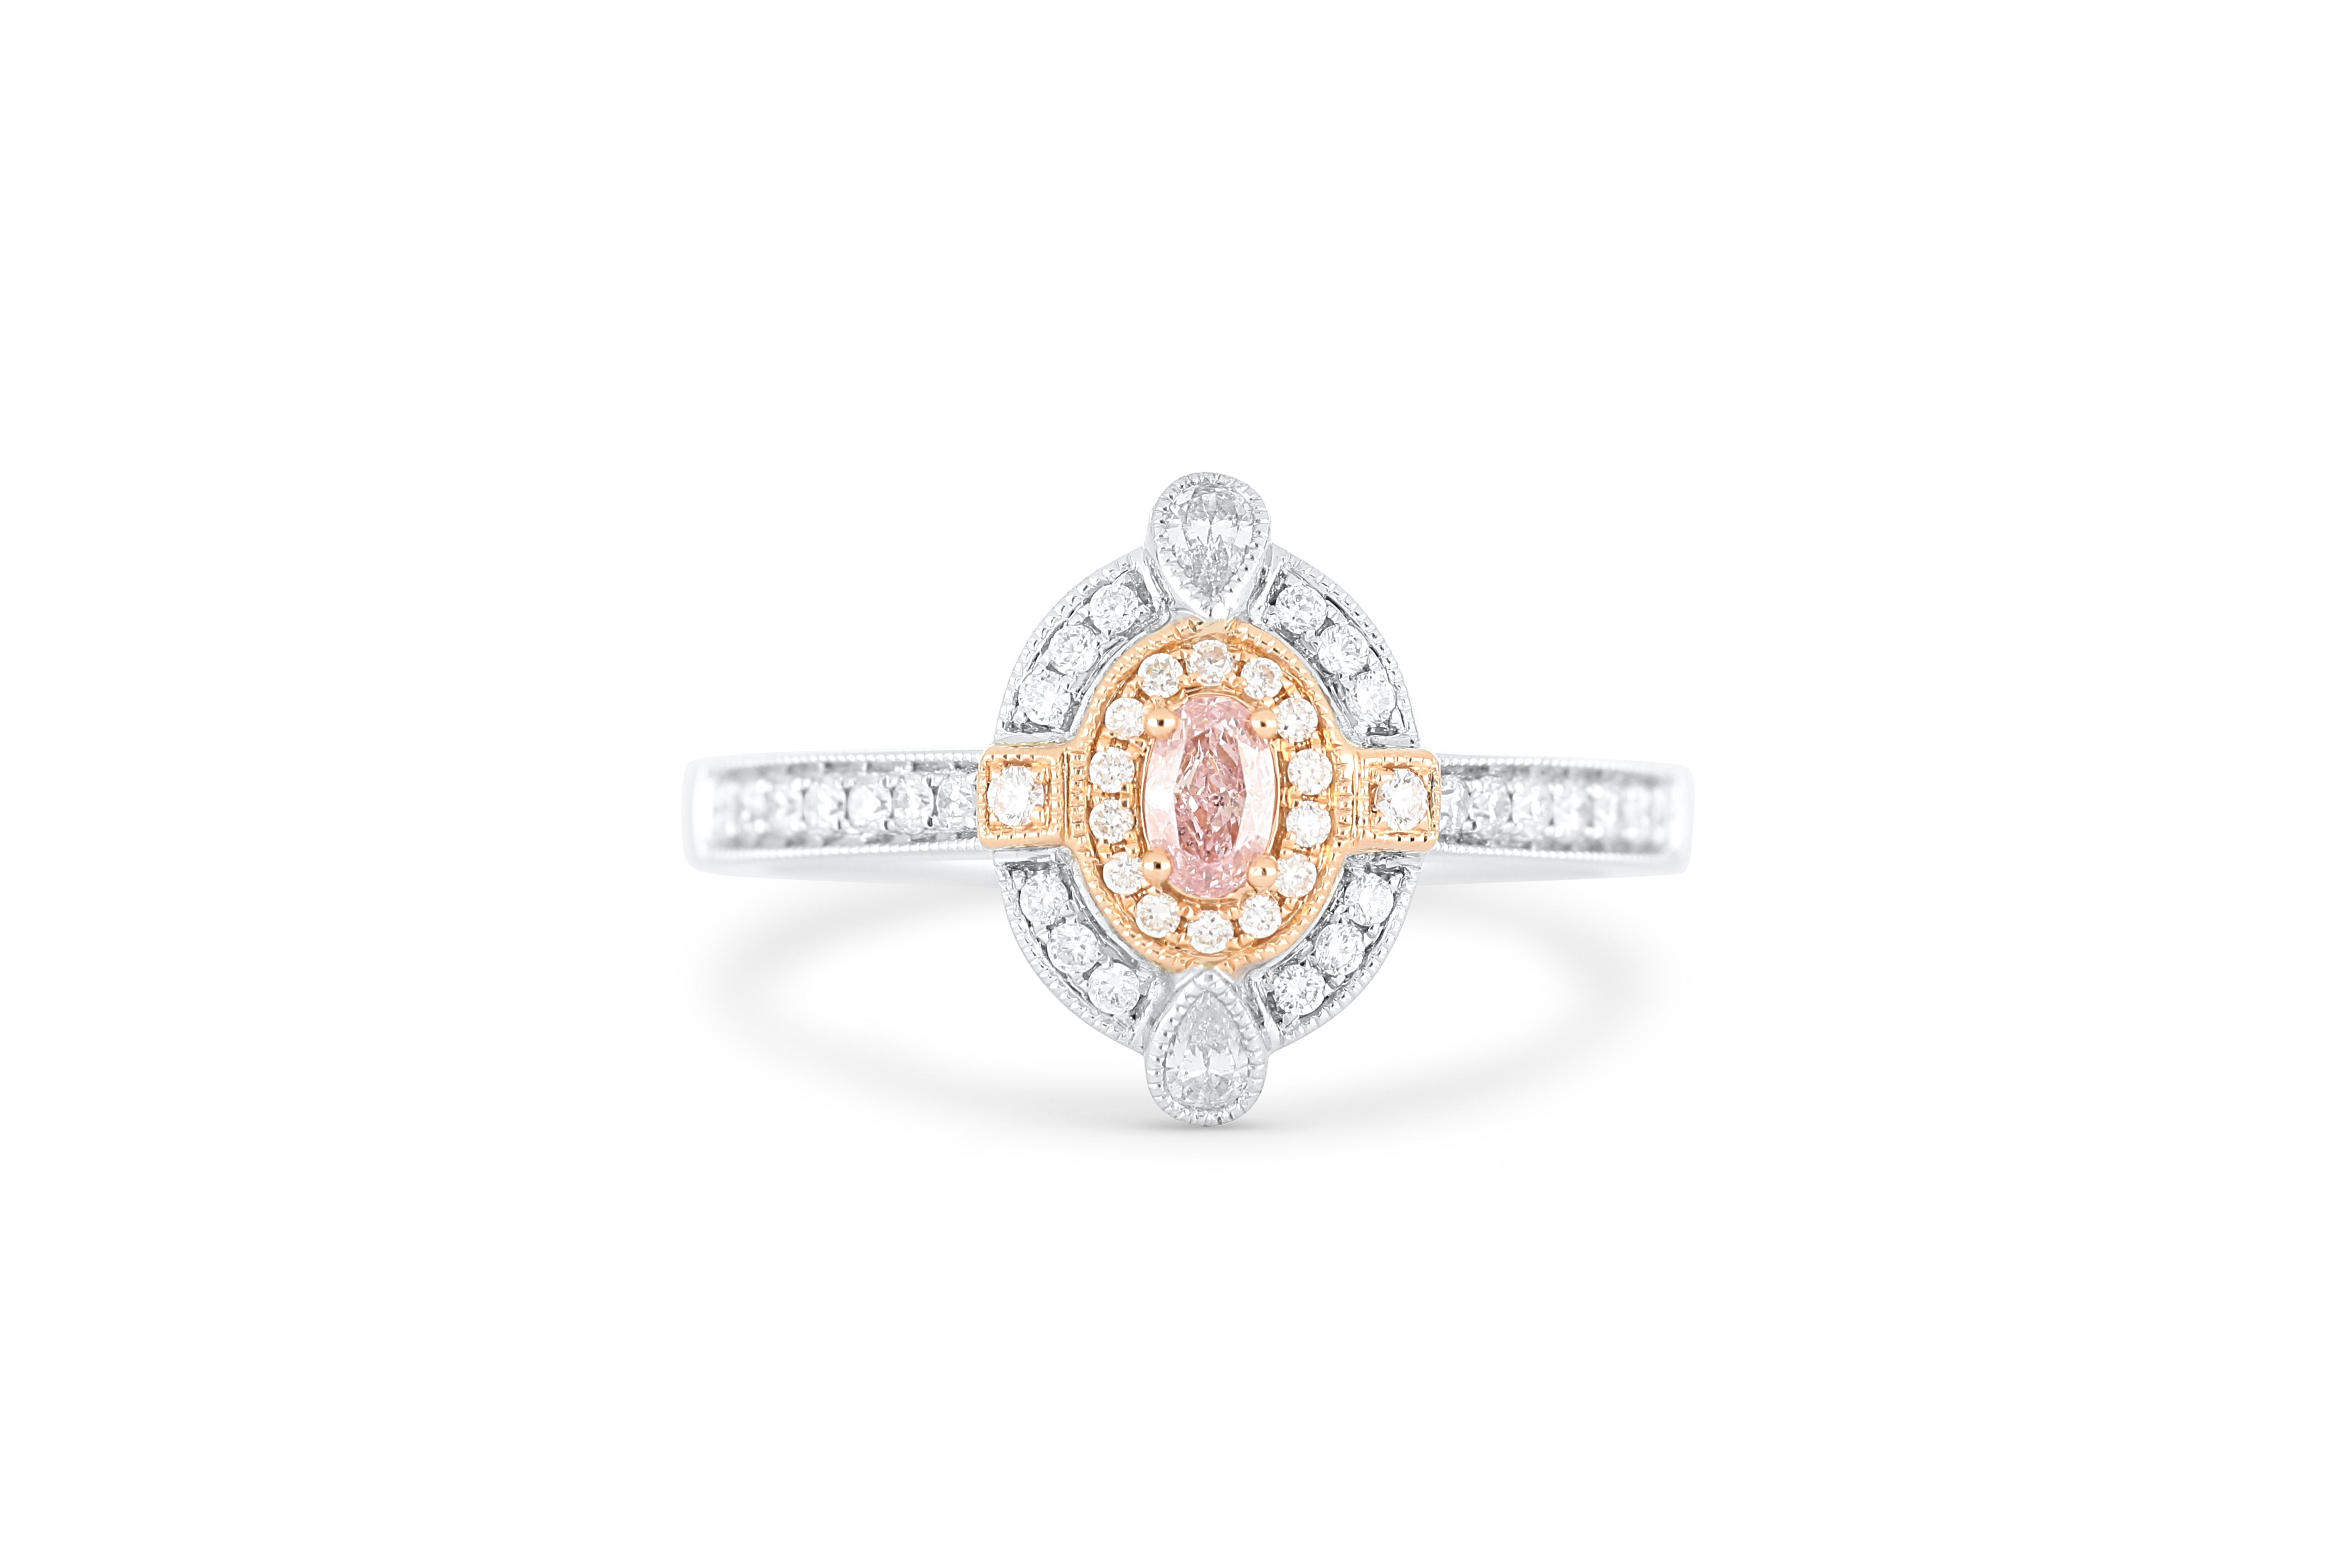 18k gold ring set with a centre FP Argyle 0.118ct oval cut natural diamond